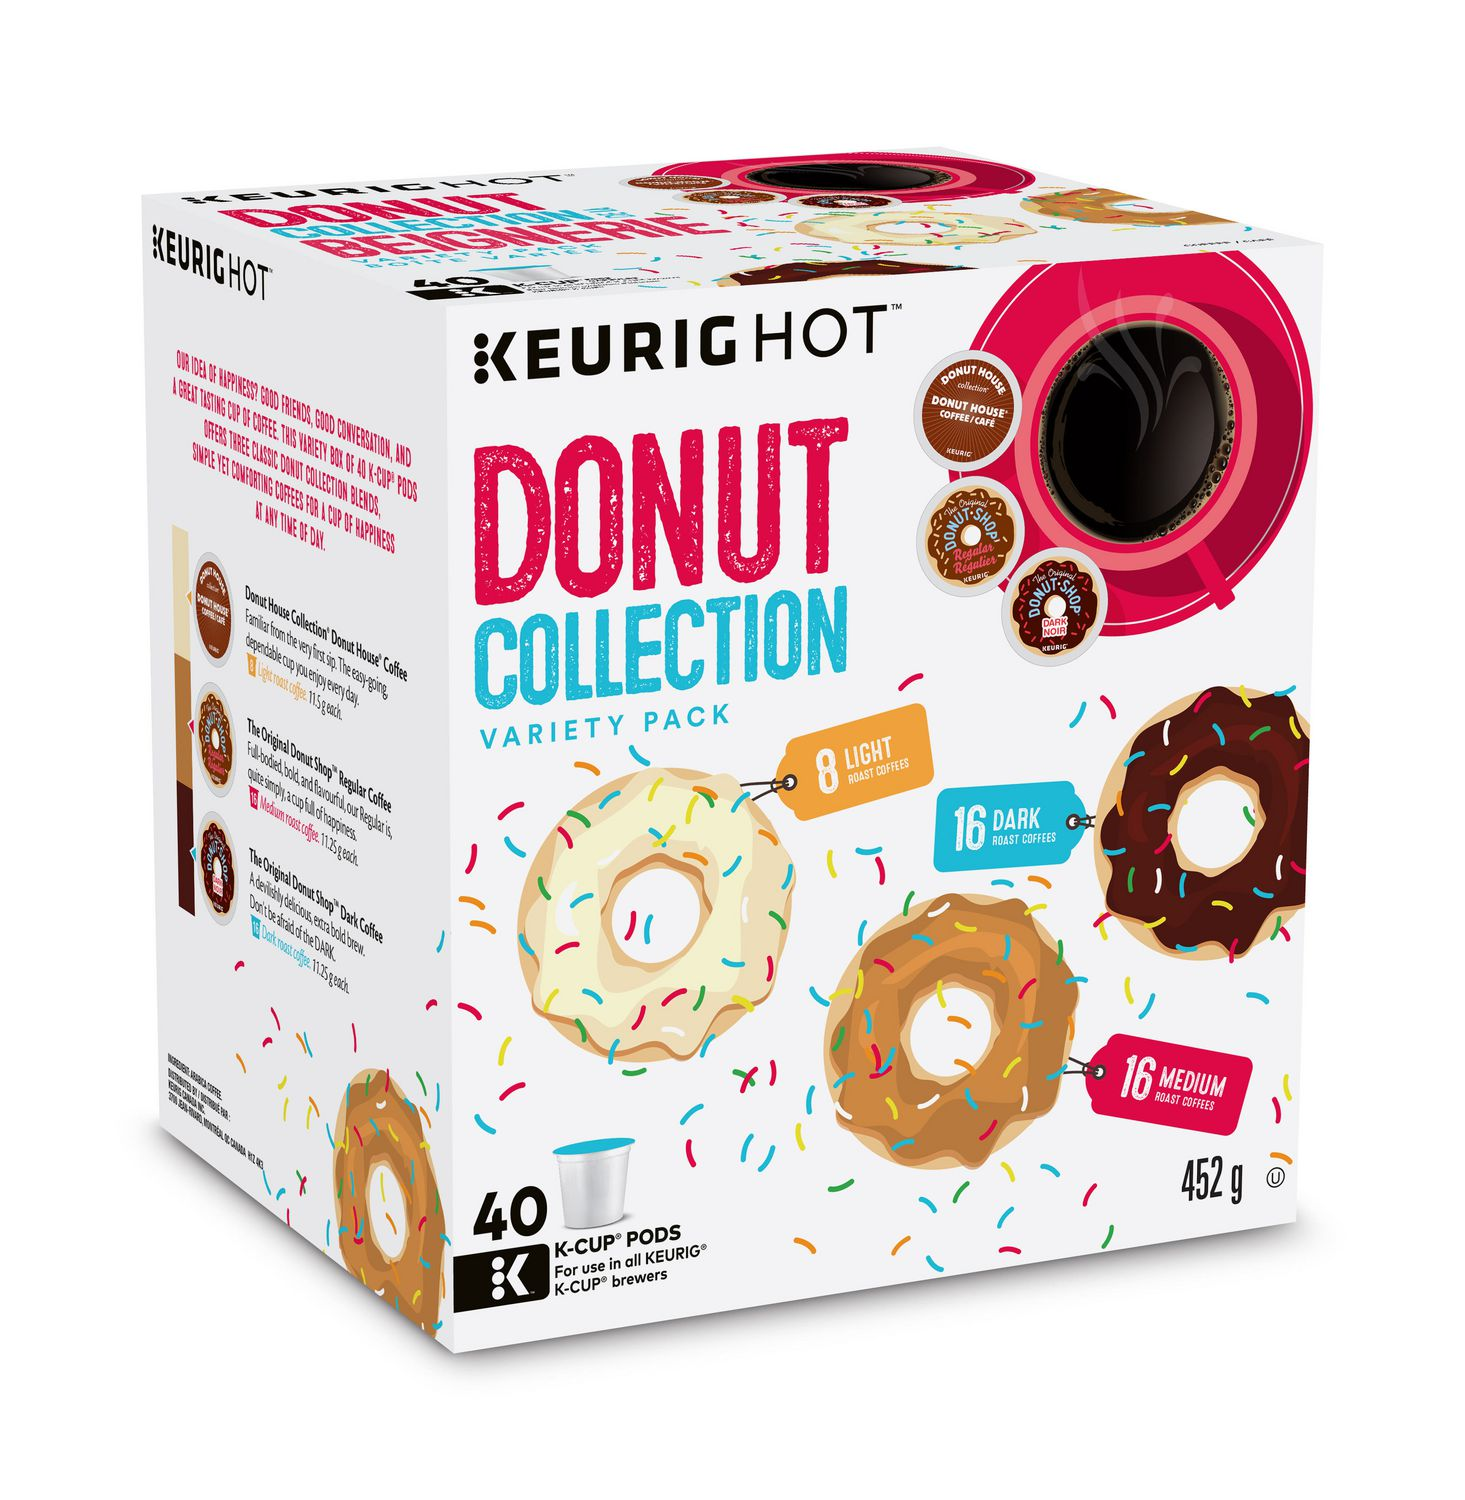 keurig hot donut collection variety box kcup coffee pods - Keurig Coffee Pods